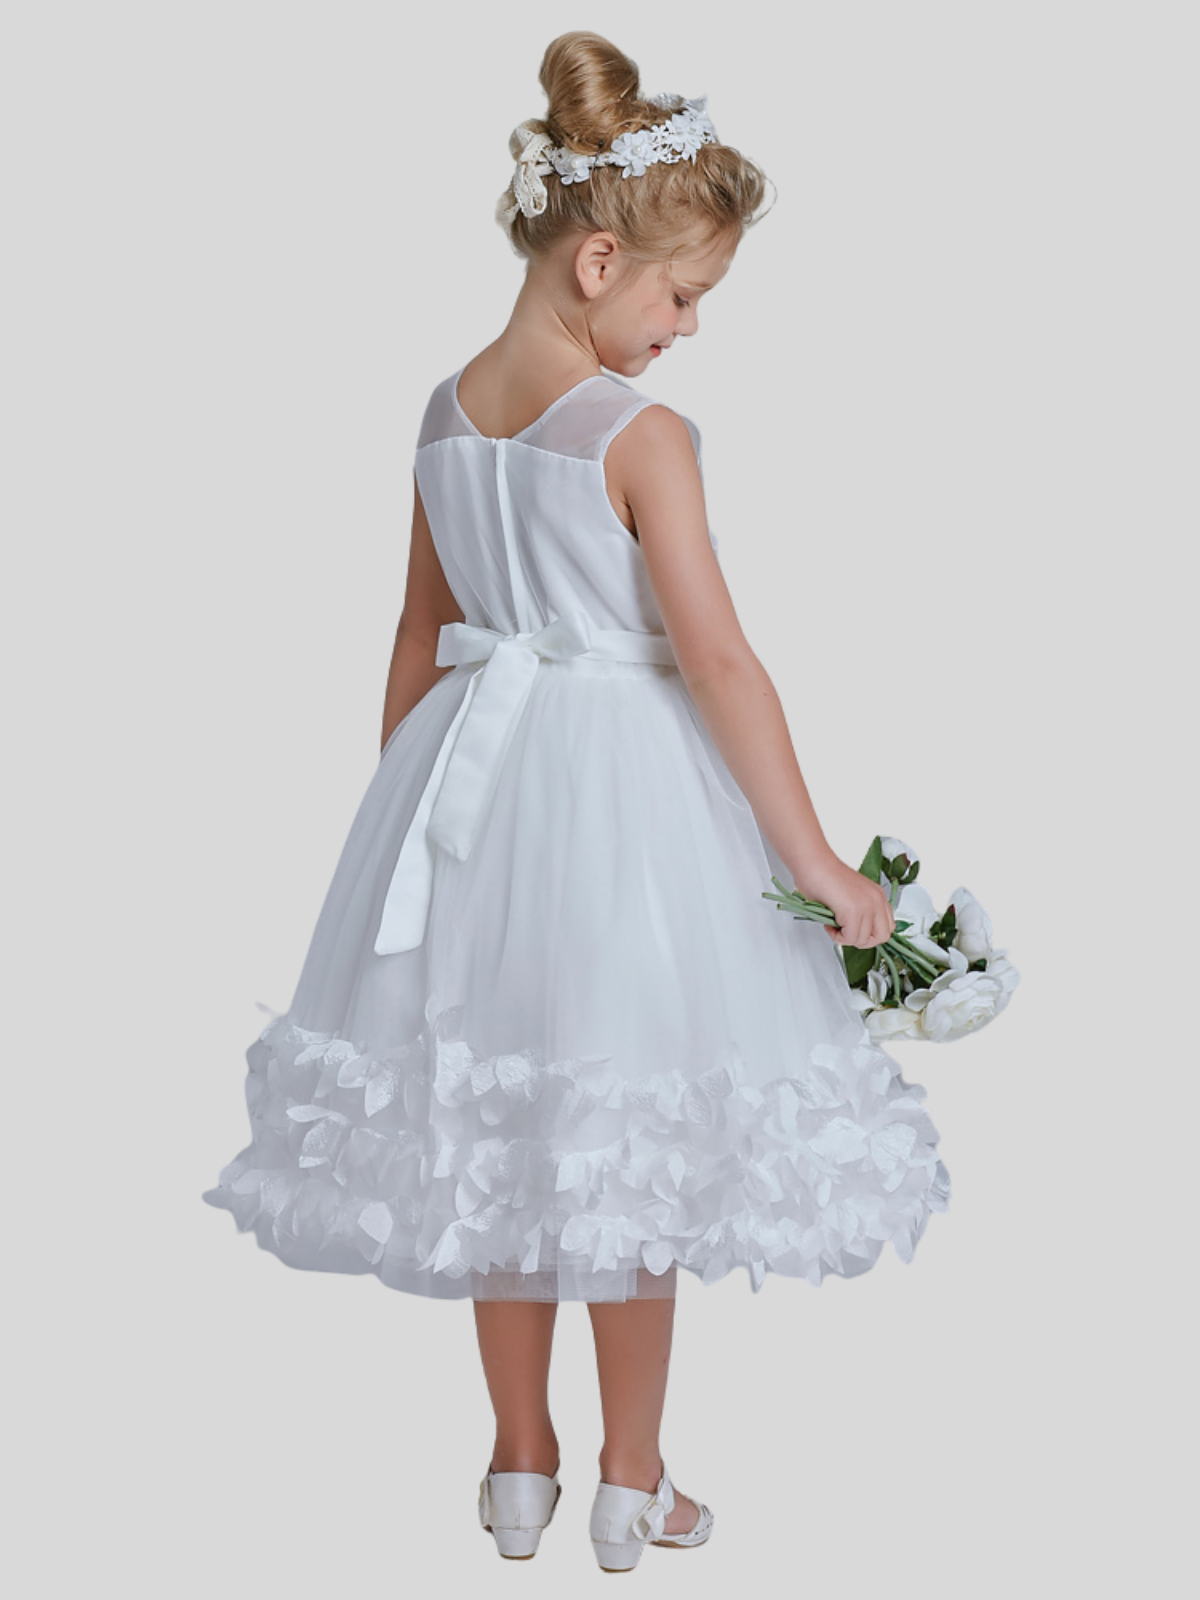 Belle Mid Calf Sleeveless Flower Girl Dress